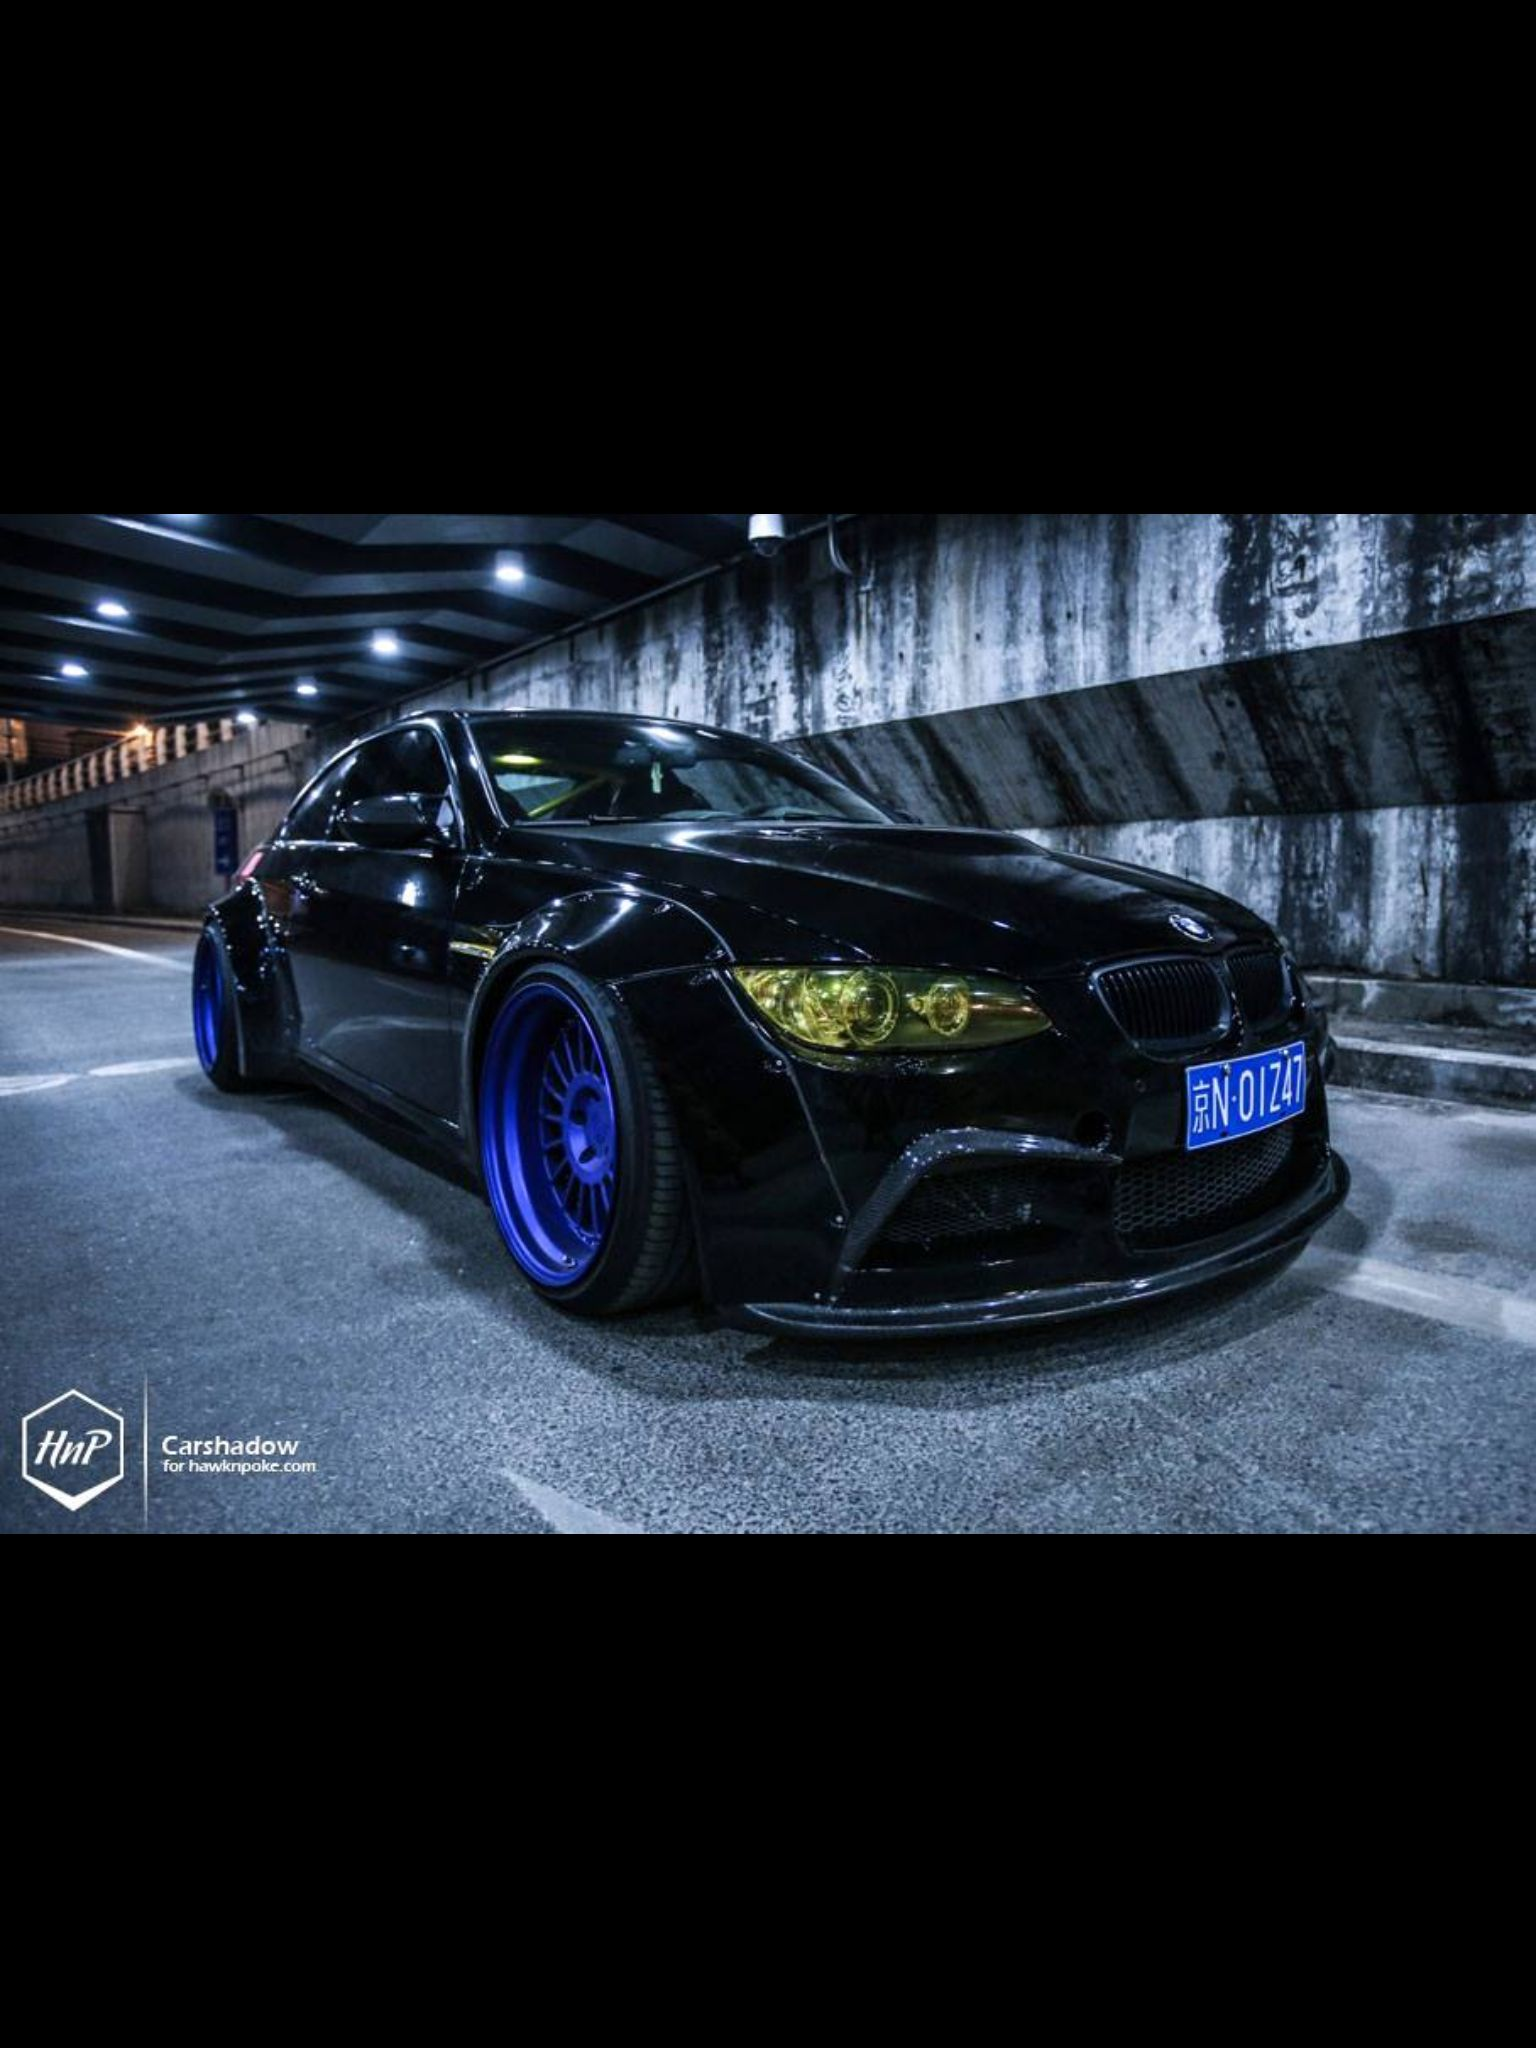 BMW from Carid